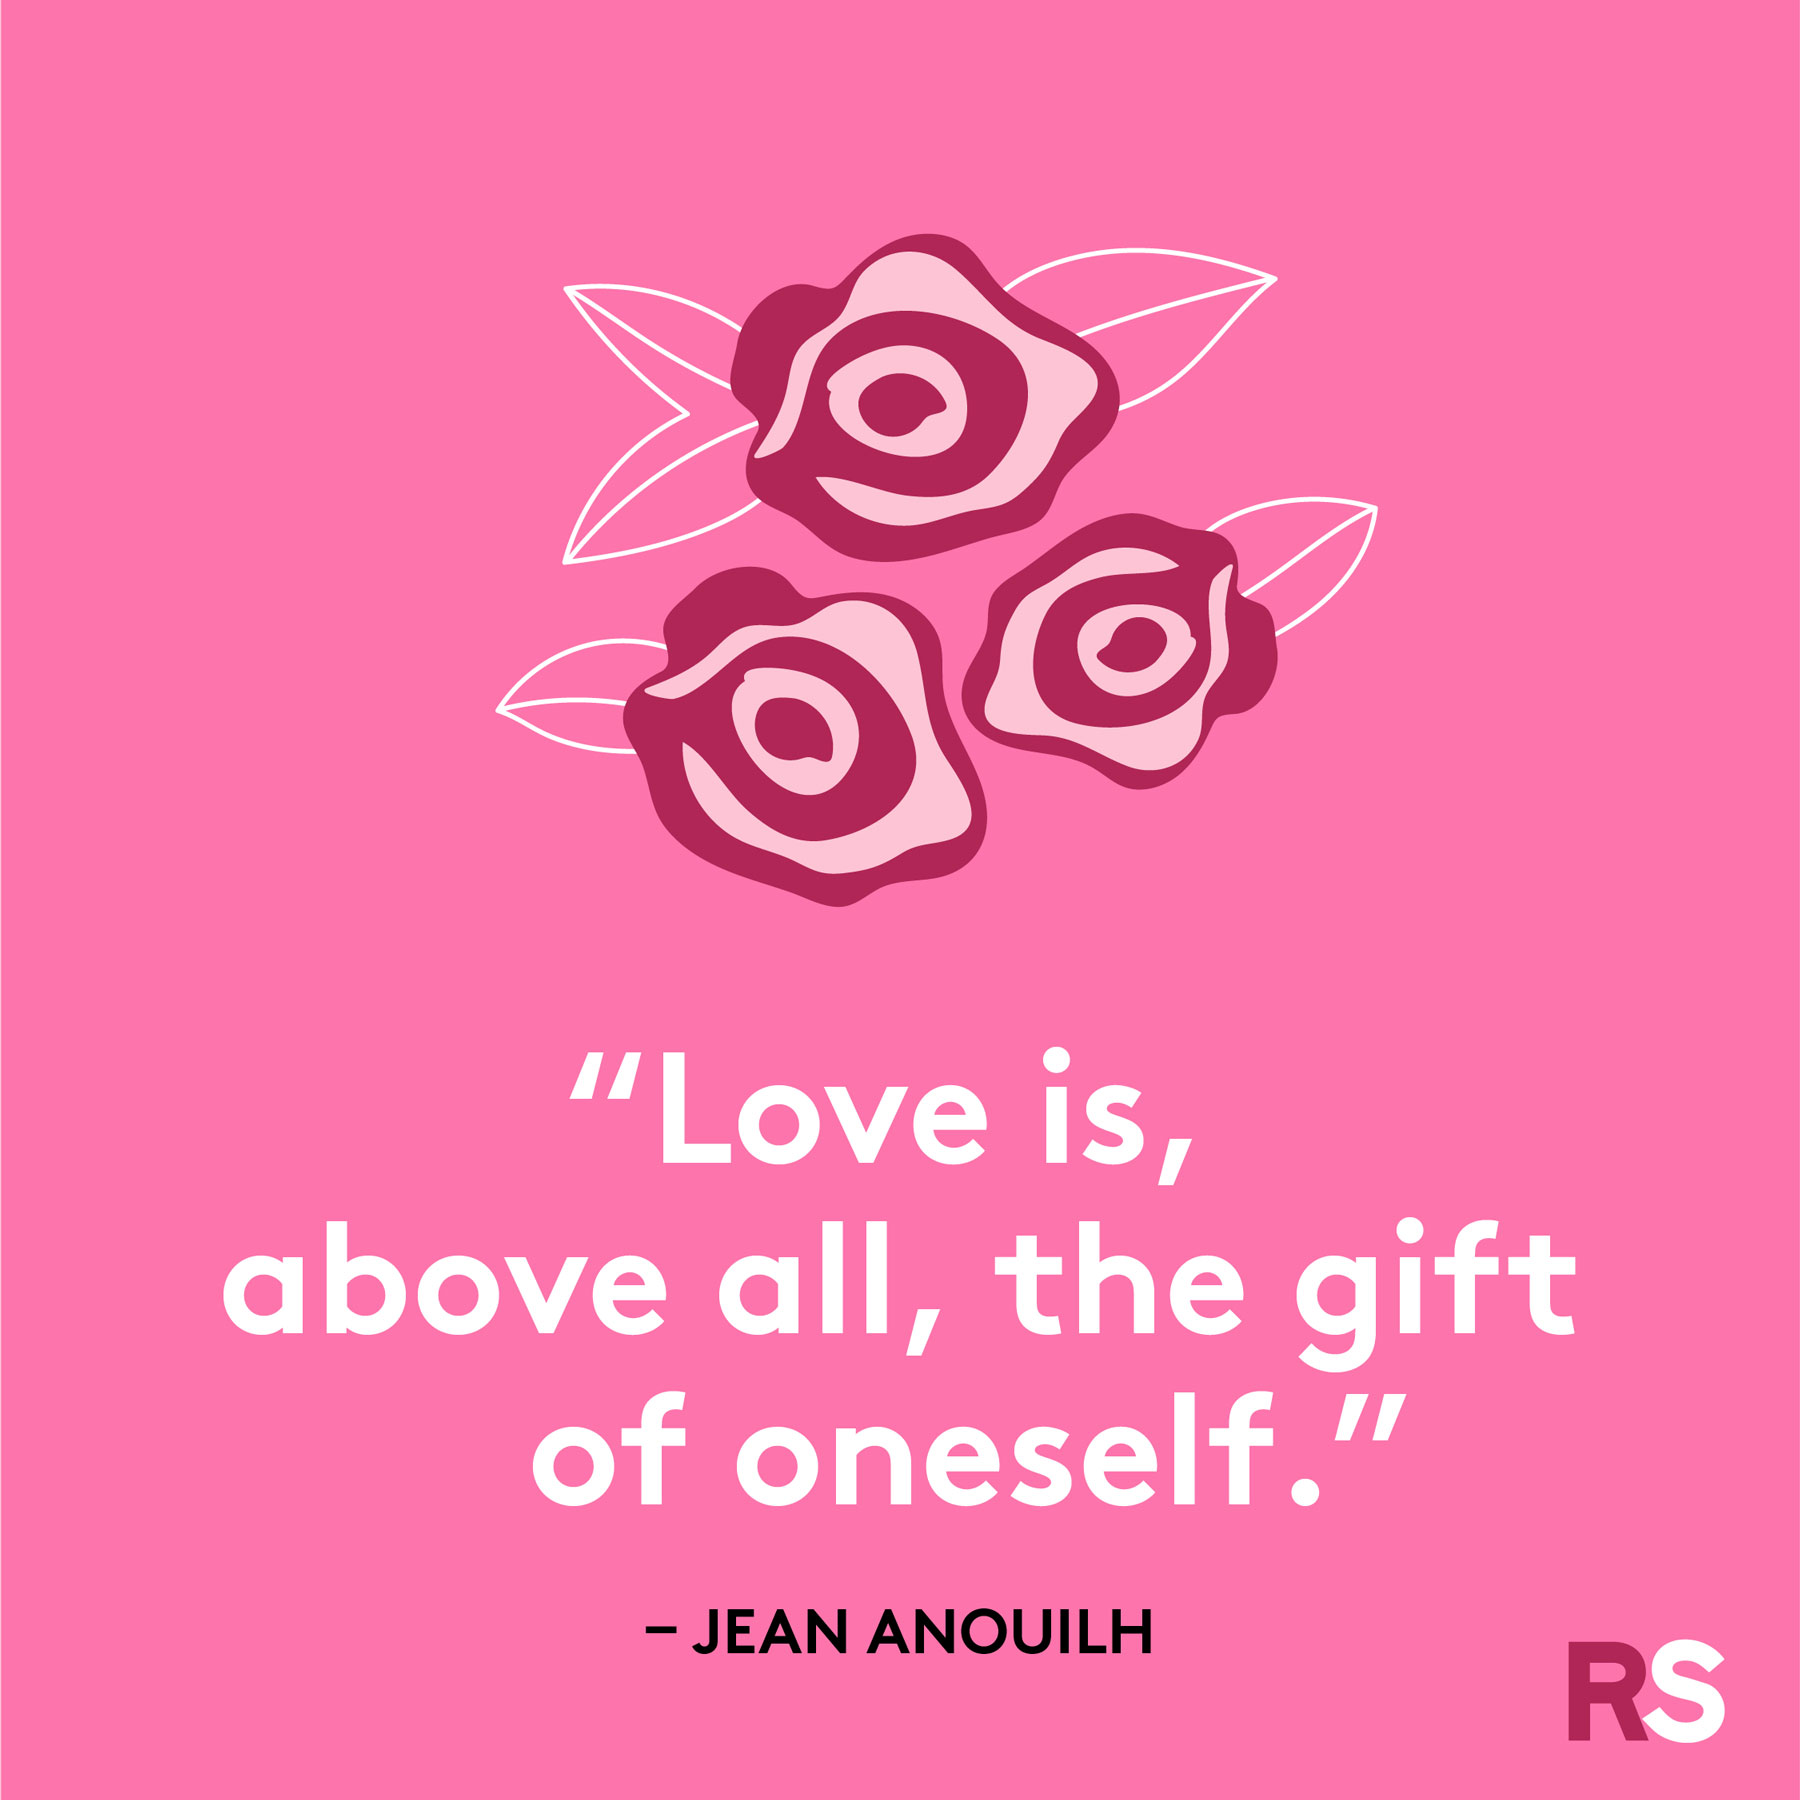 Love quotes, quotes about love - Jean Anouilh